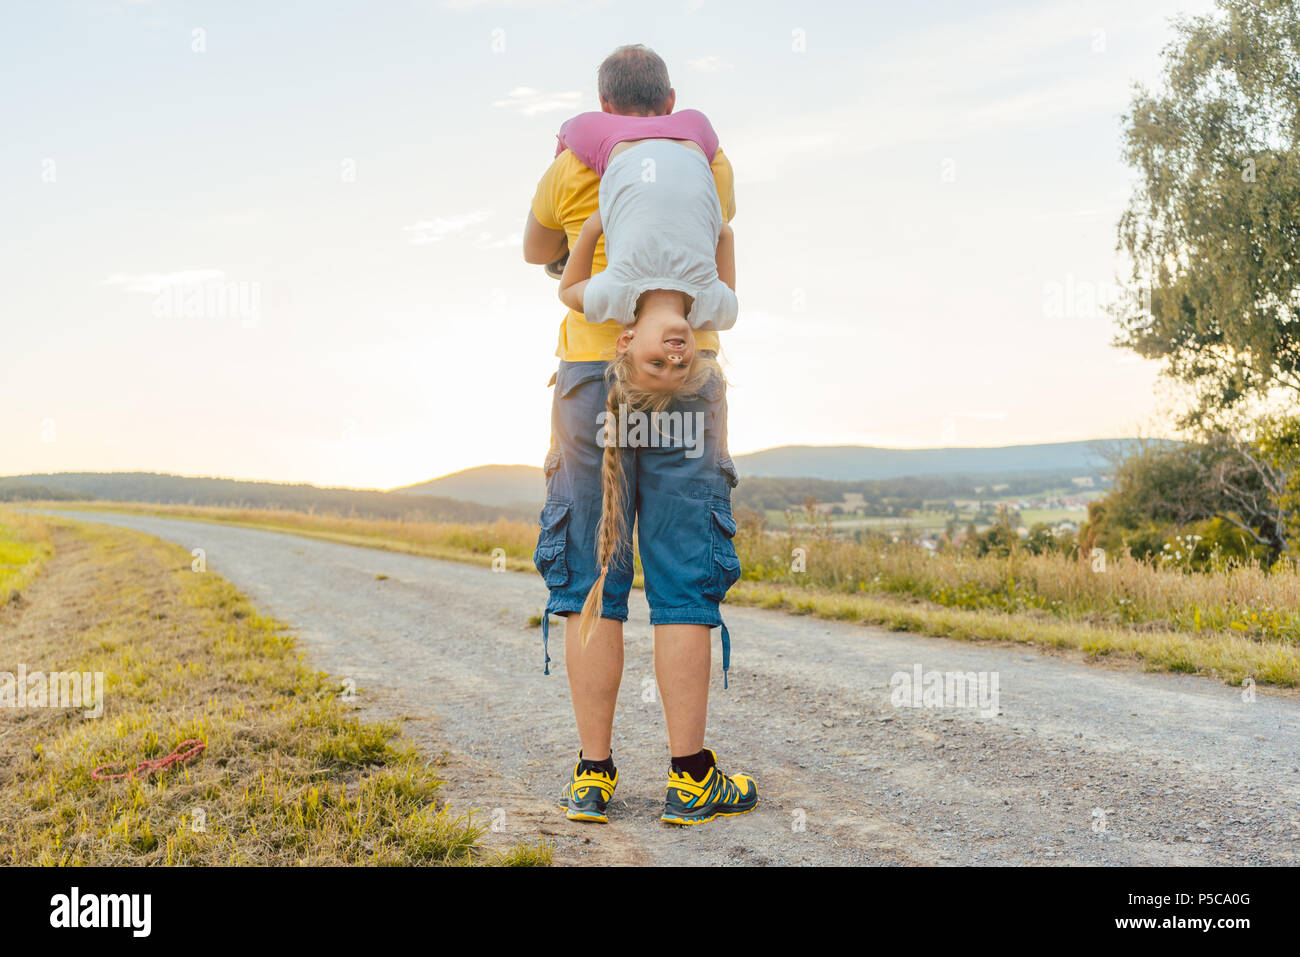 Father carrying his daughter piggyback in summer - Stock Image